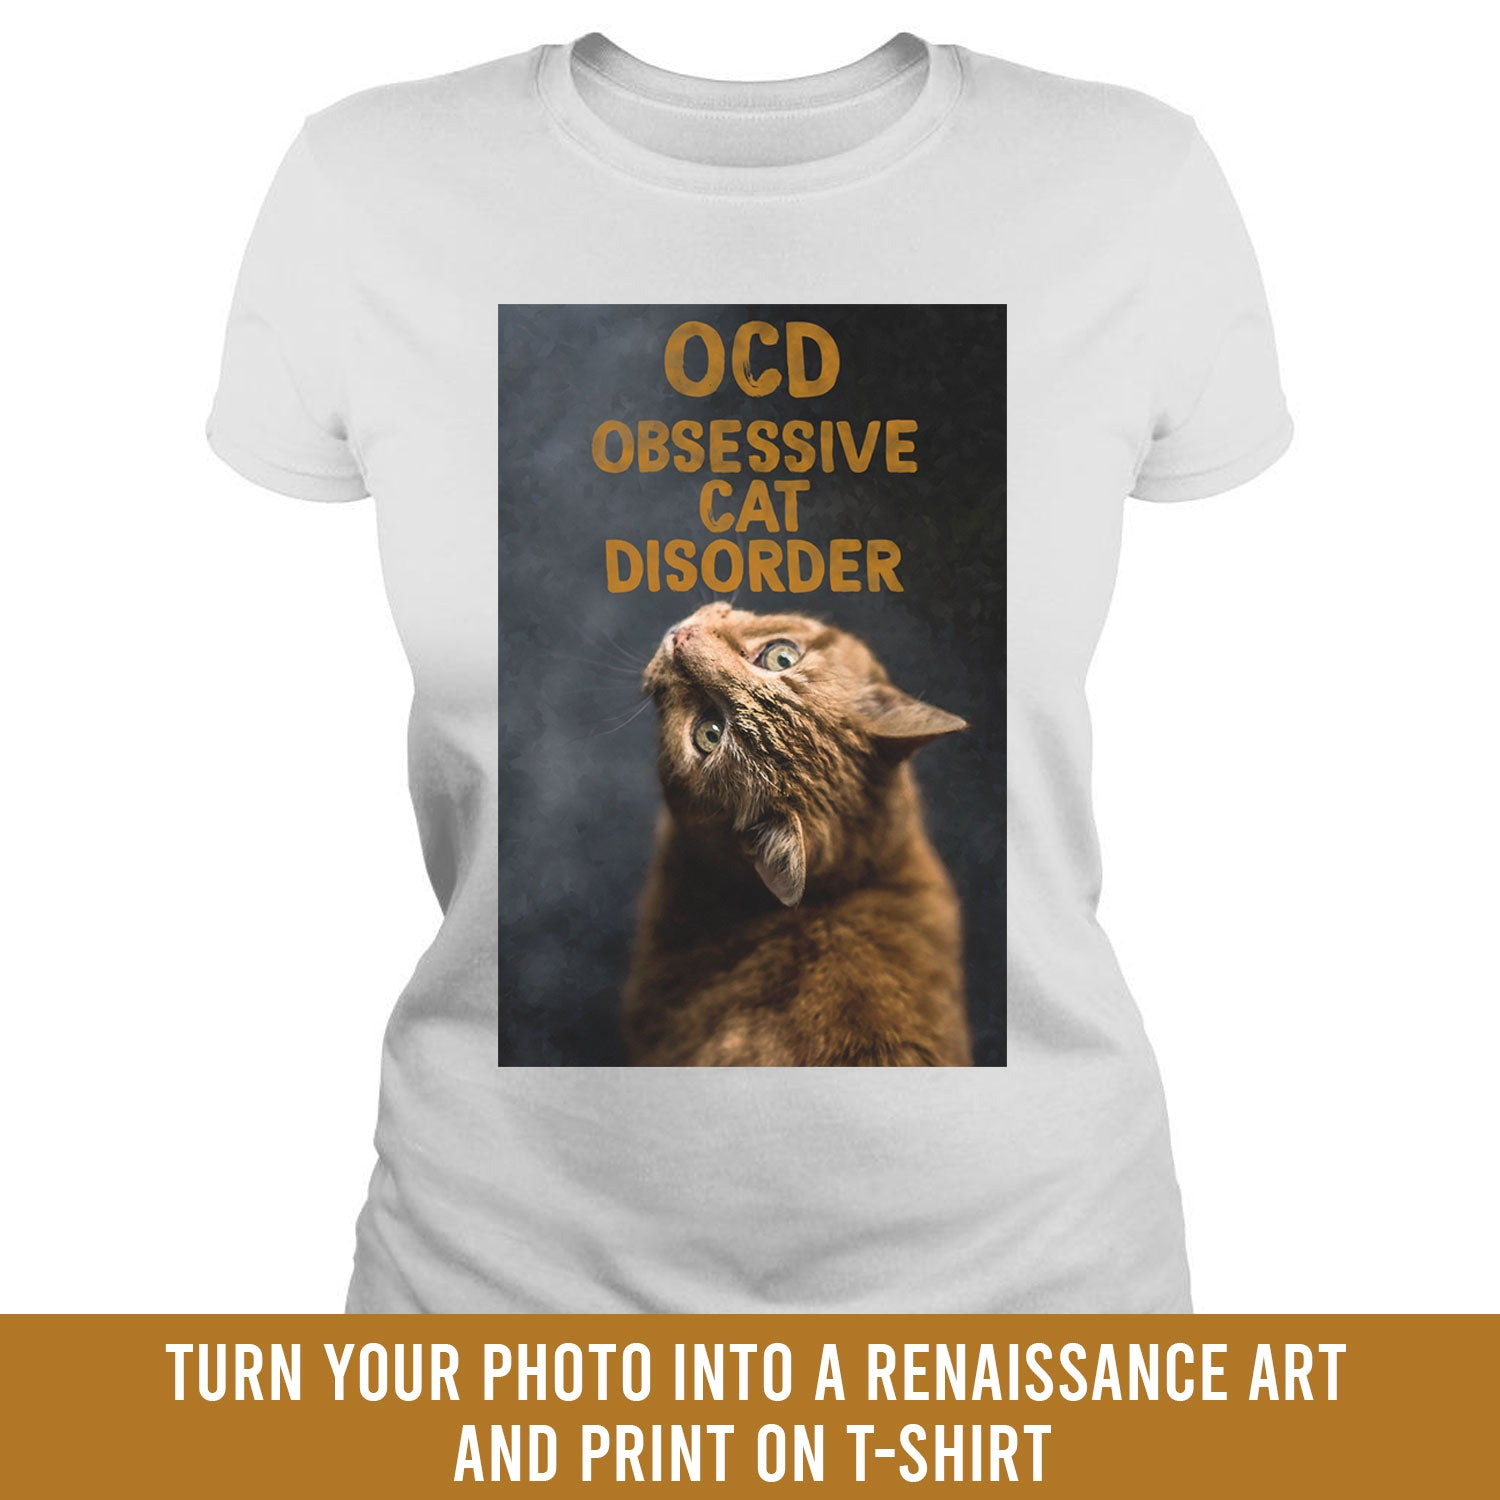 Renaissance painting OCD Cat - custom t-shirt